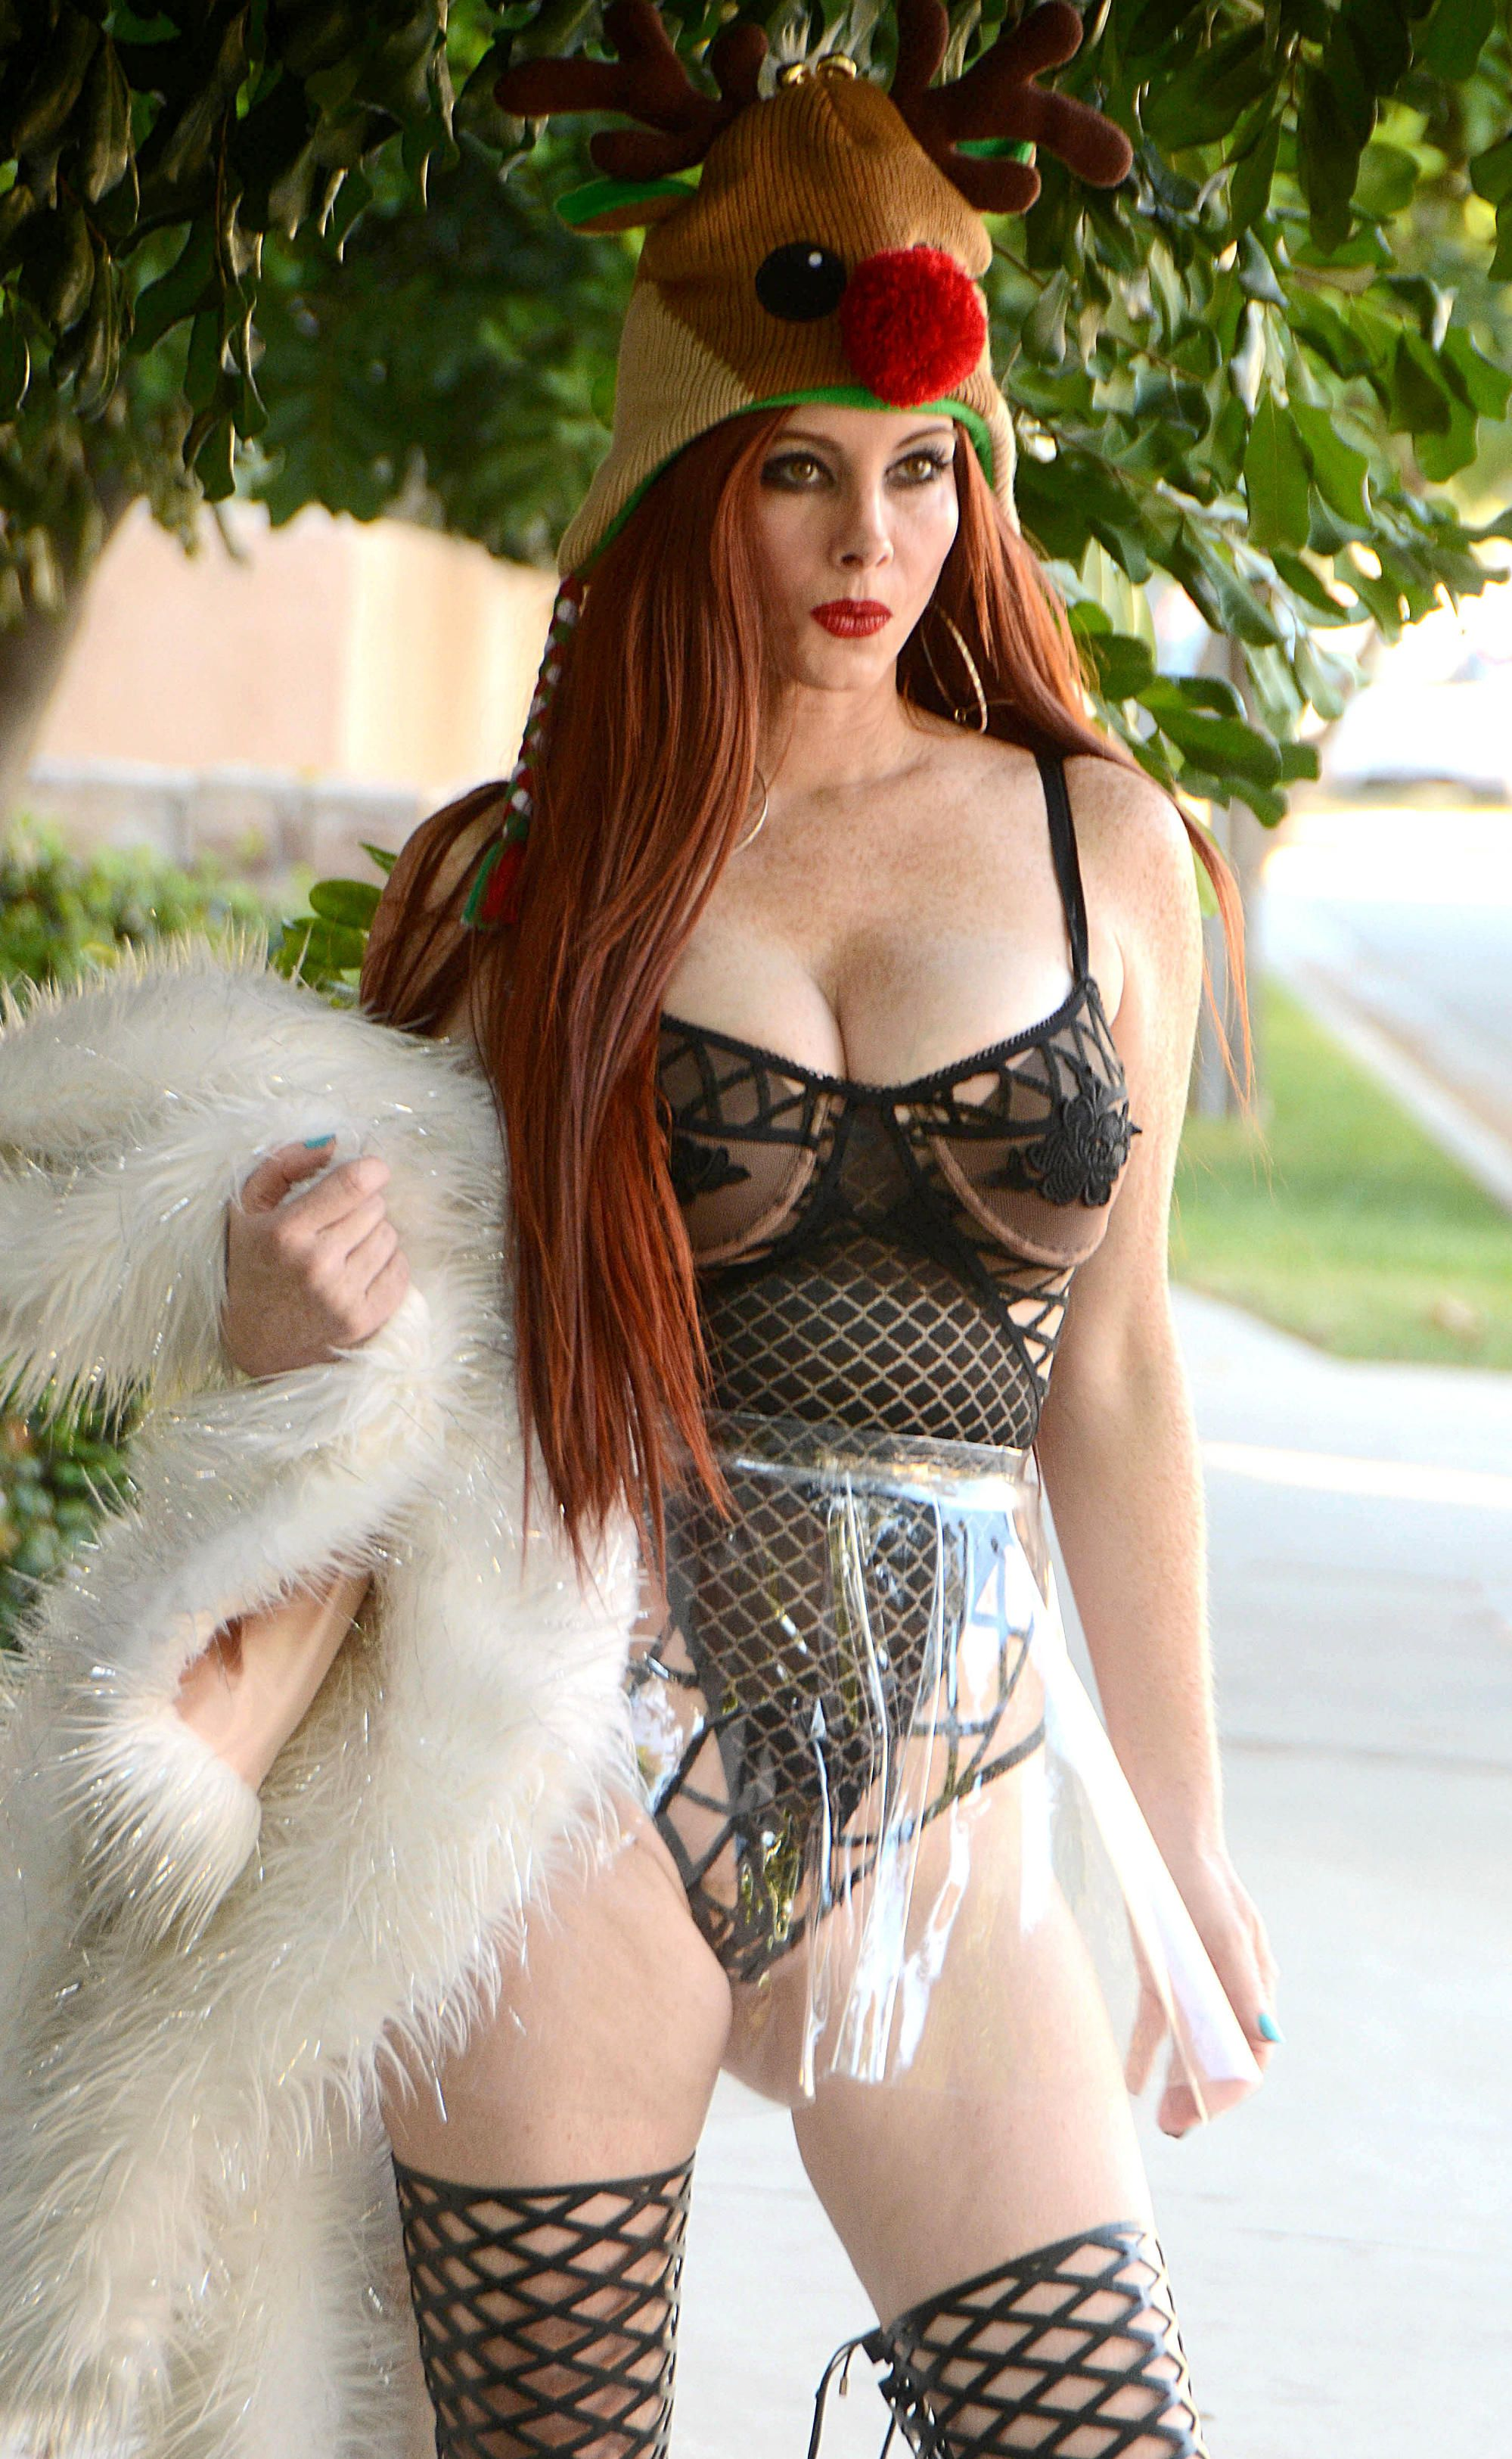 Porn Phoebe Price naked (28 photo), Pussy, Fappening, Instagram, cameltoe 2020